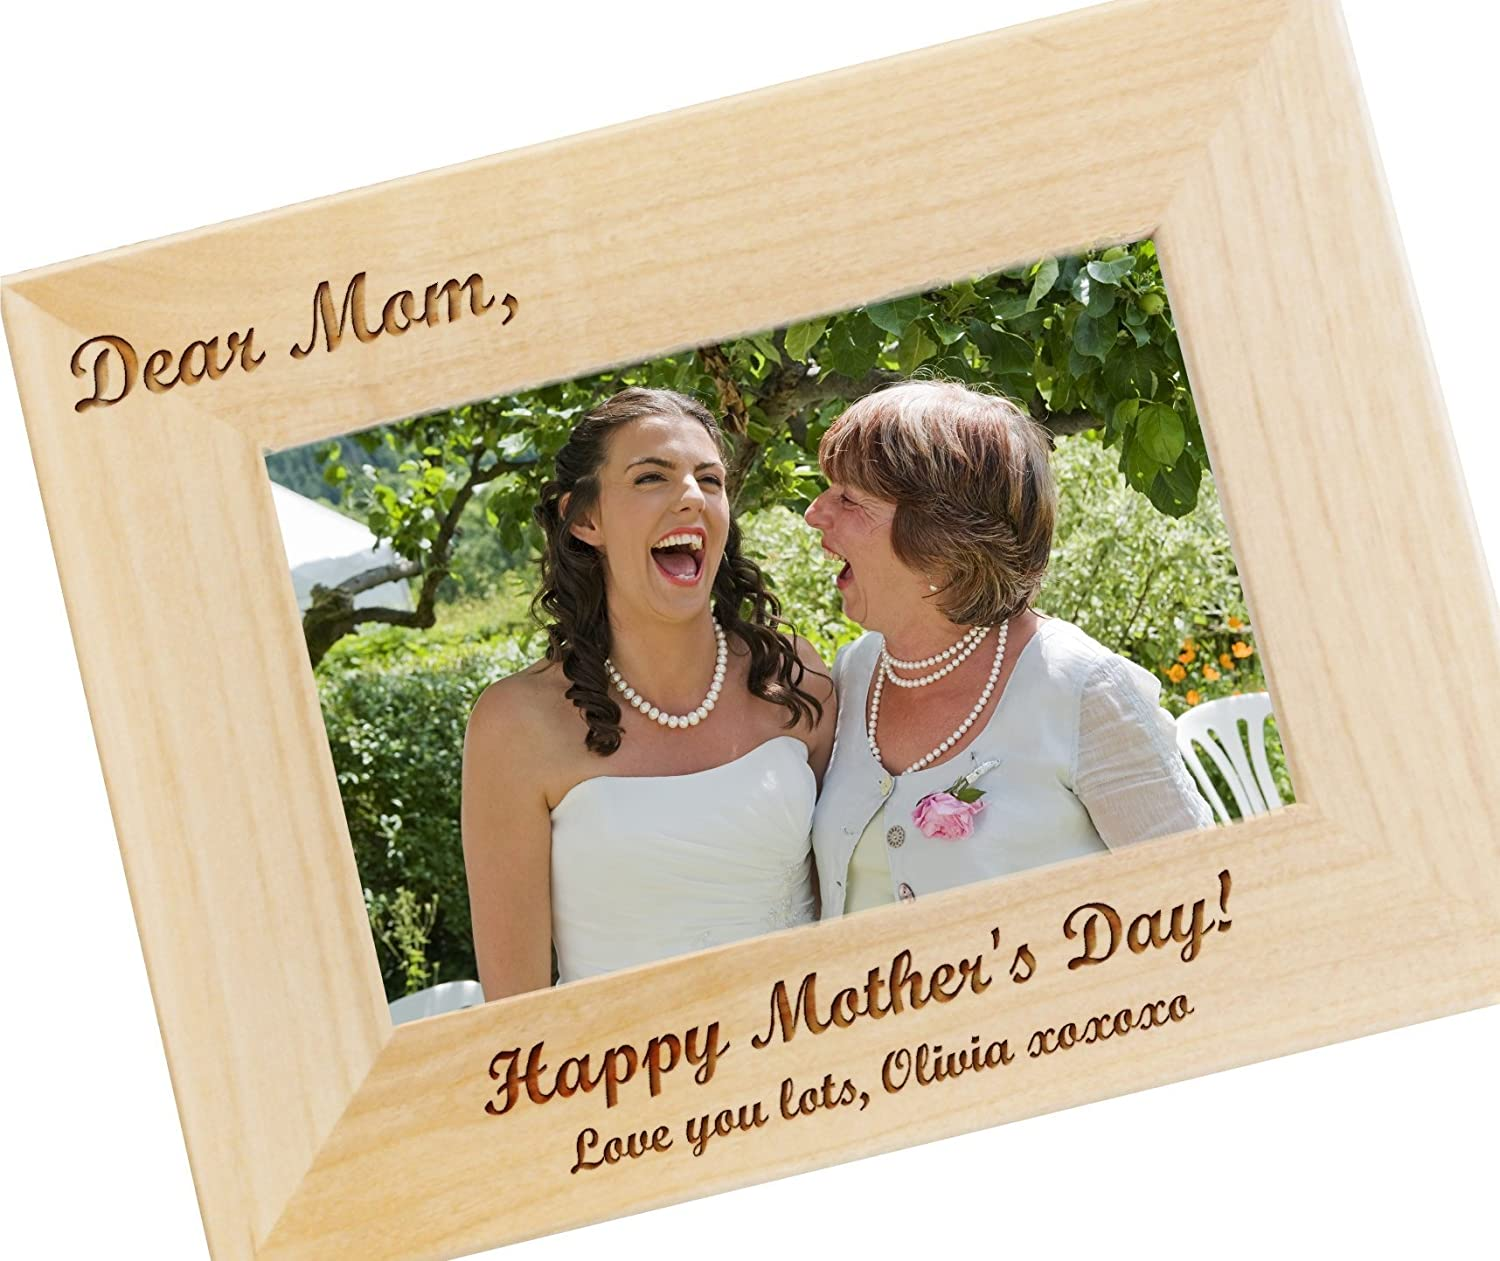 Amazon Com Dear Mom Custom Engraved Photo Frame For Moms Personalized Picture Frames Mother Of The Bride Gifts Wf15 Handmade